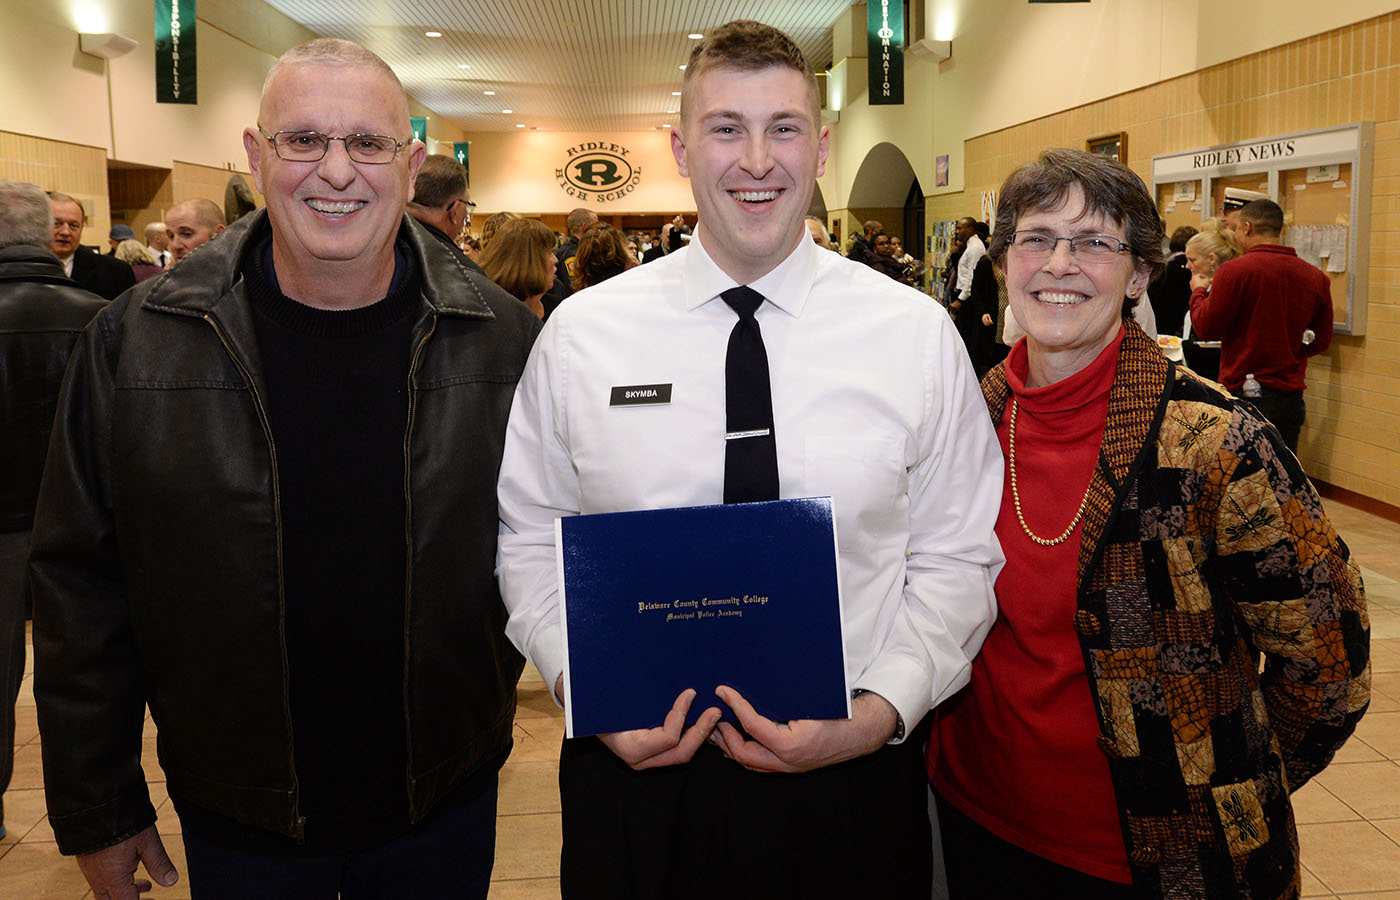 Police Academy graduate with family